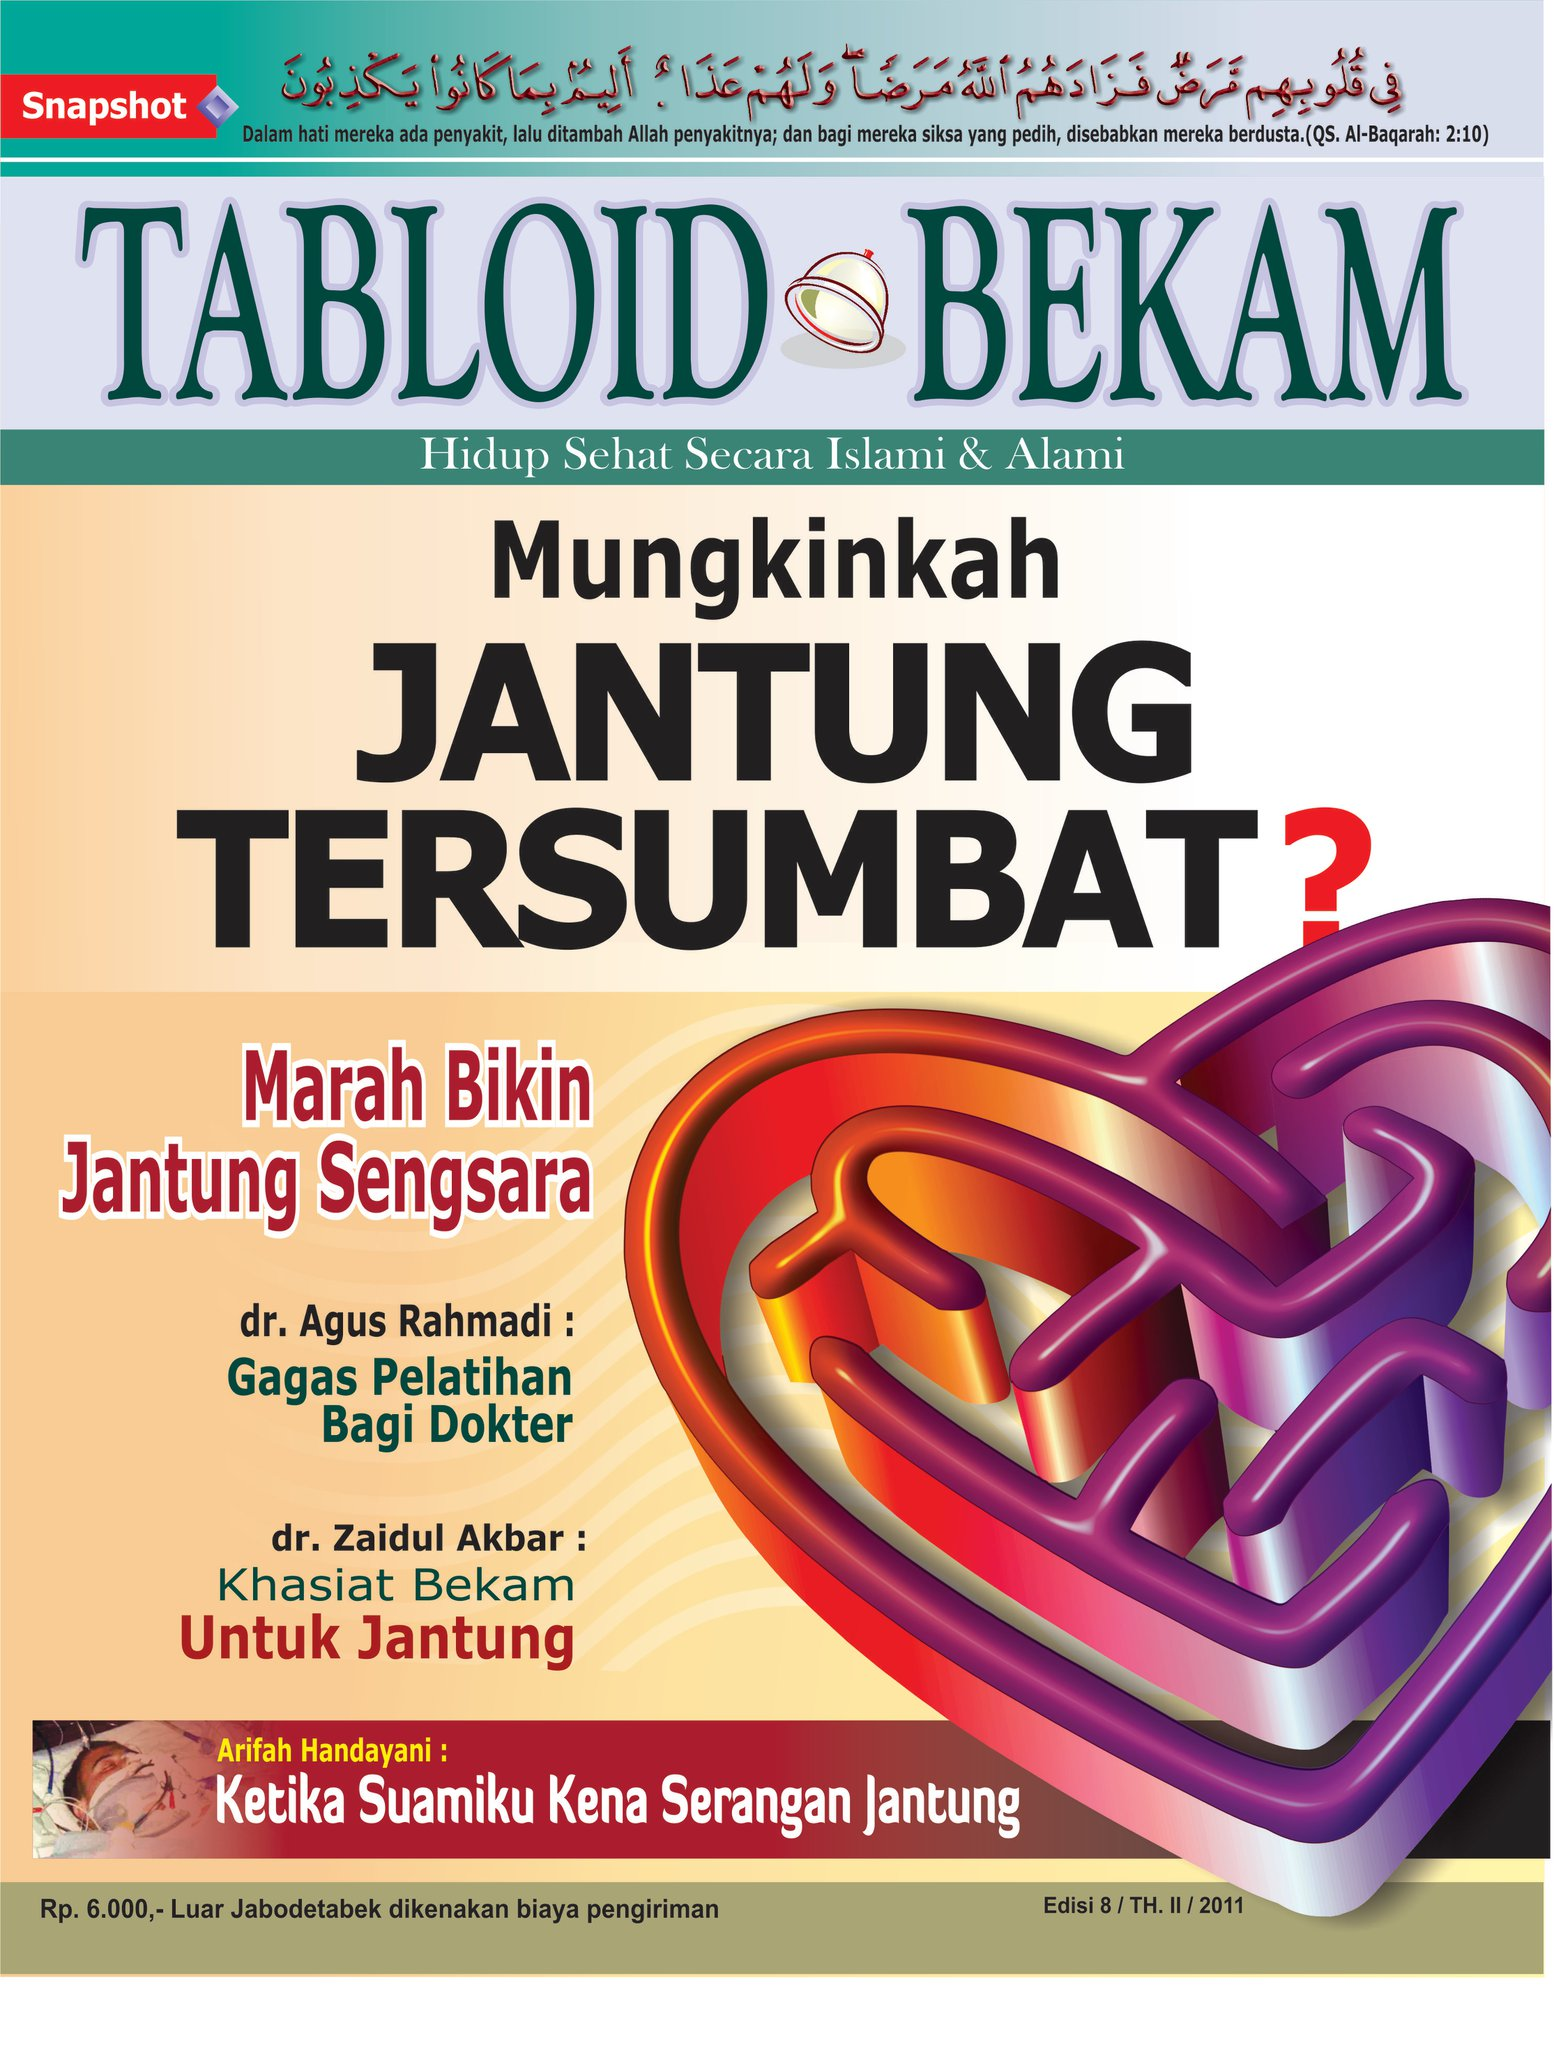 Edisi 8 tabloid bekam